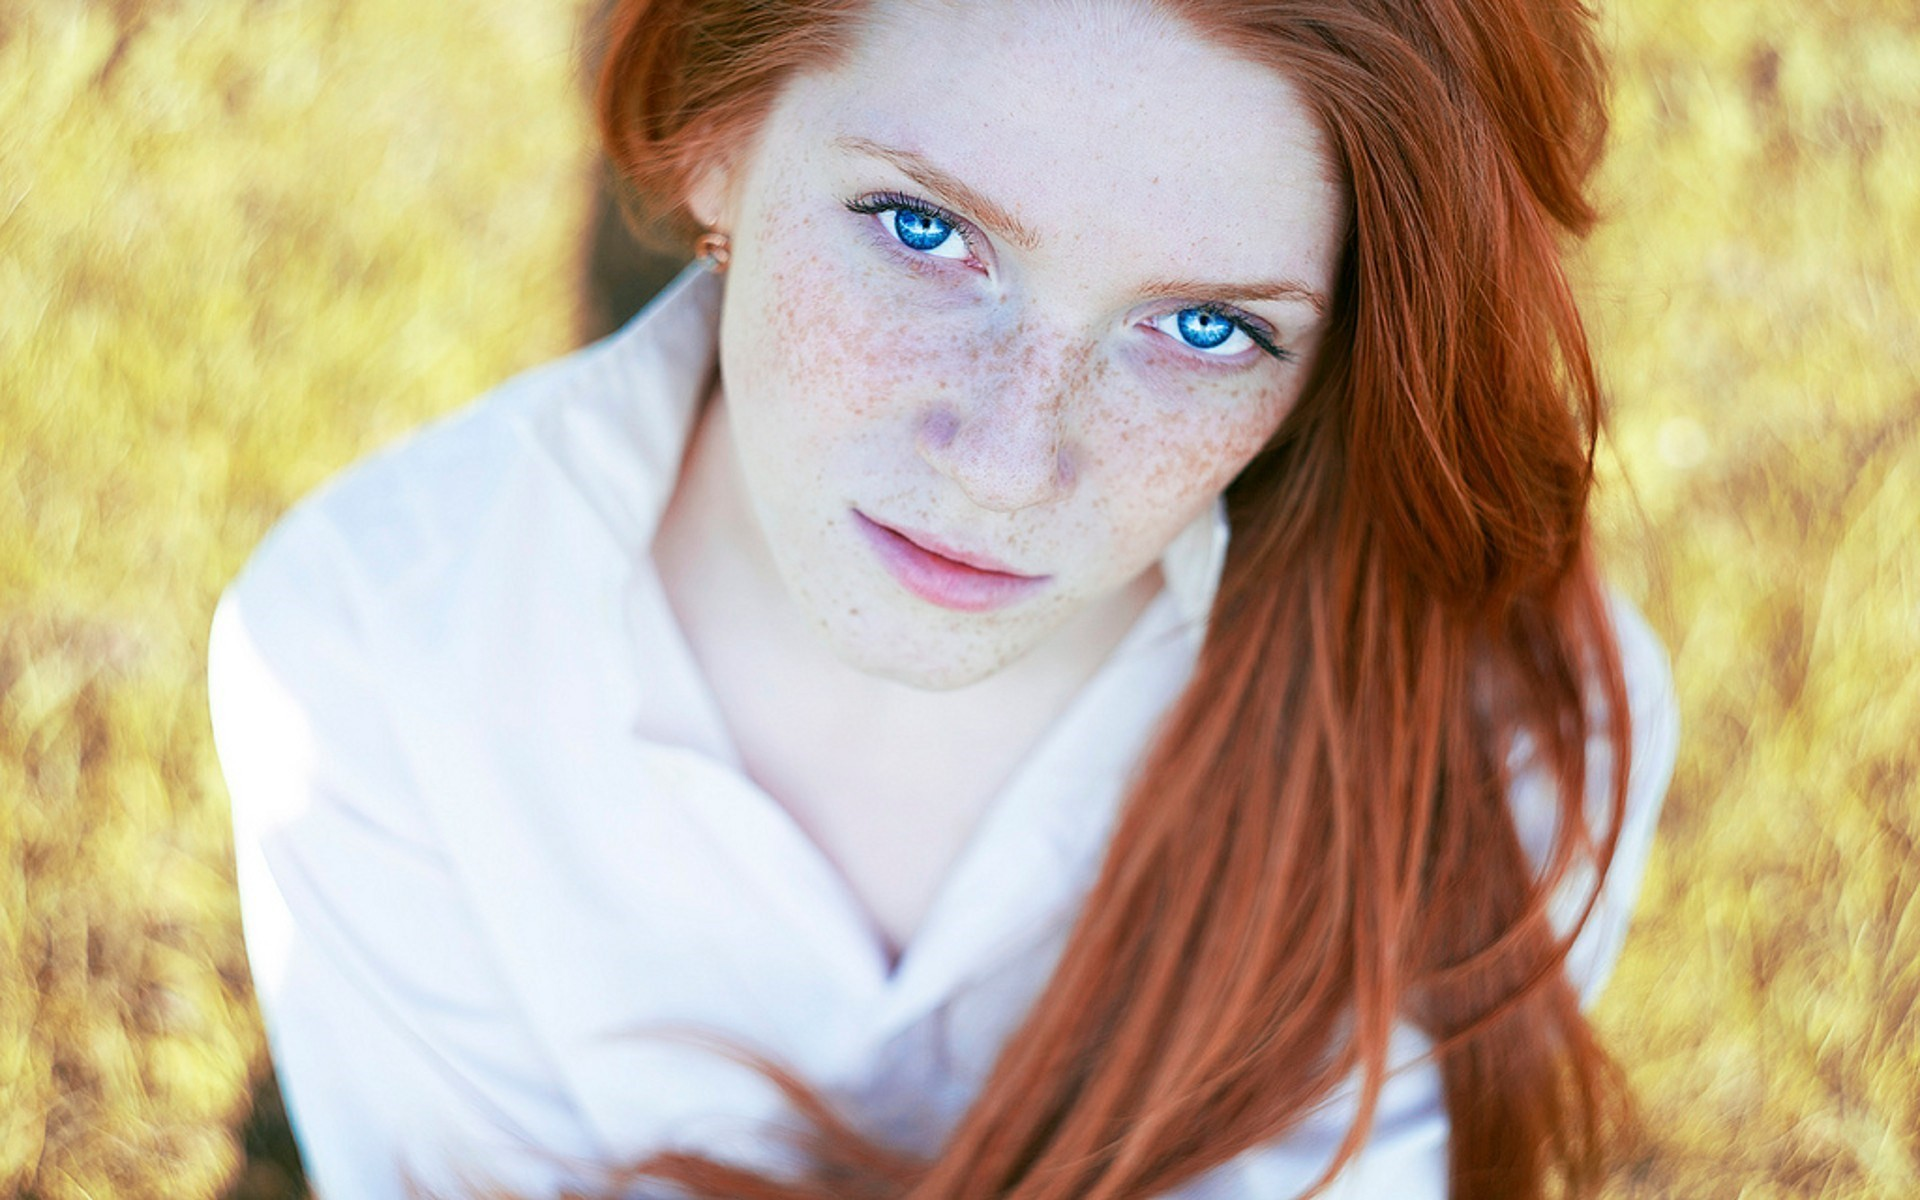 orgasm-young-redhead-girl-screwing-online